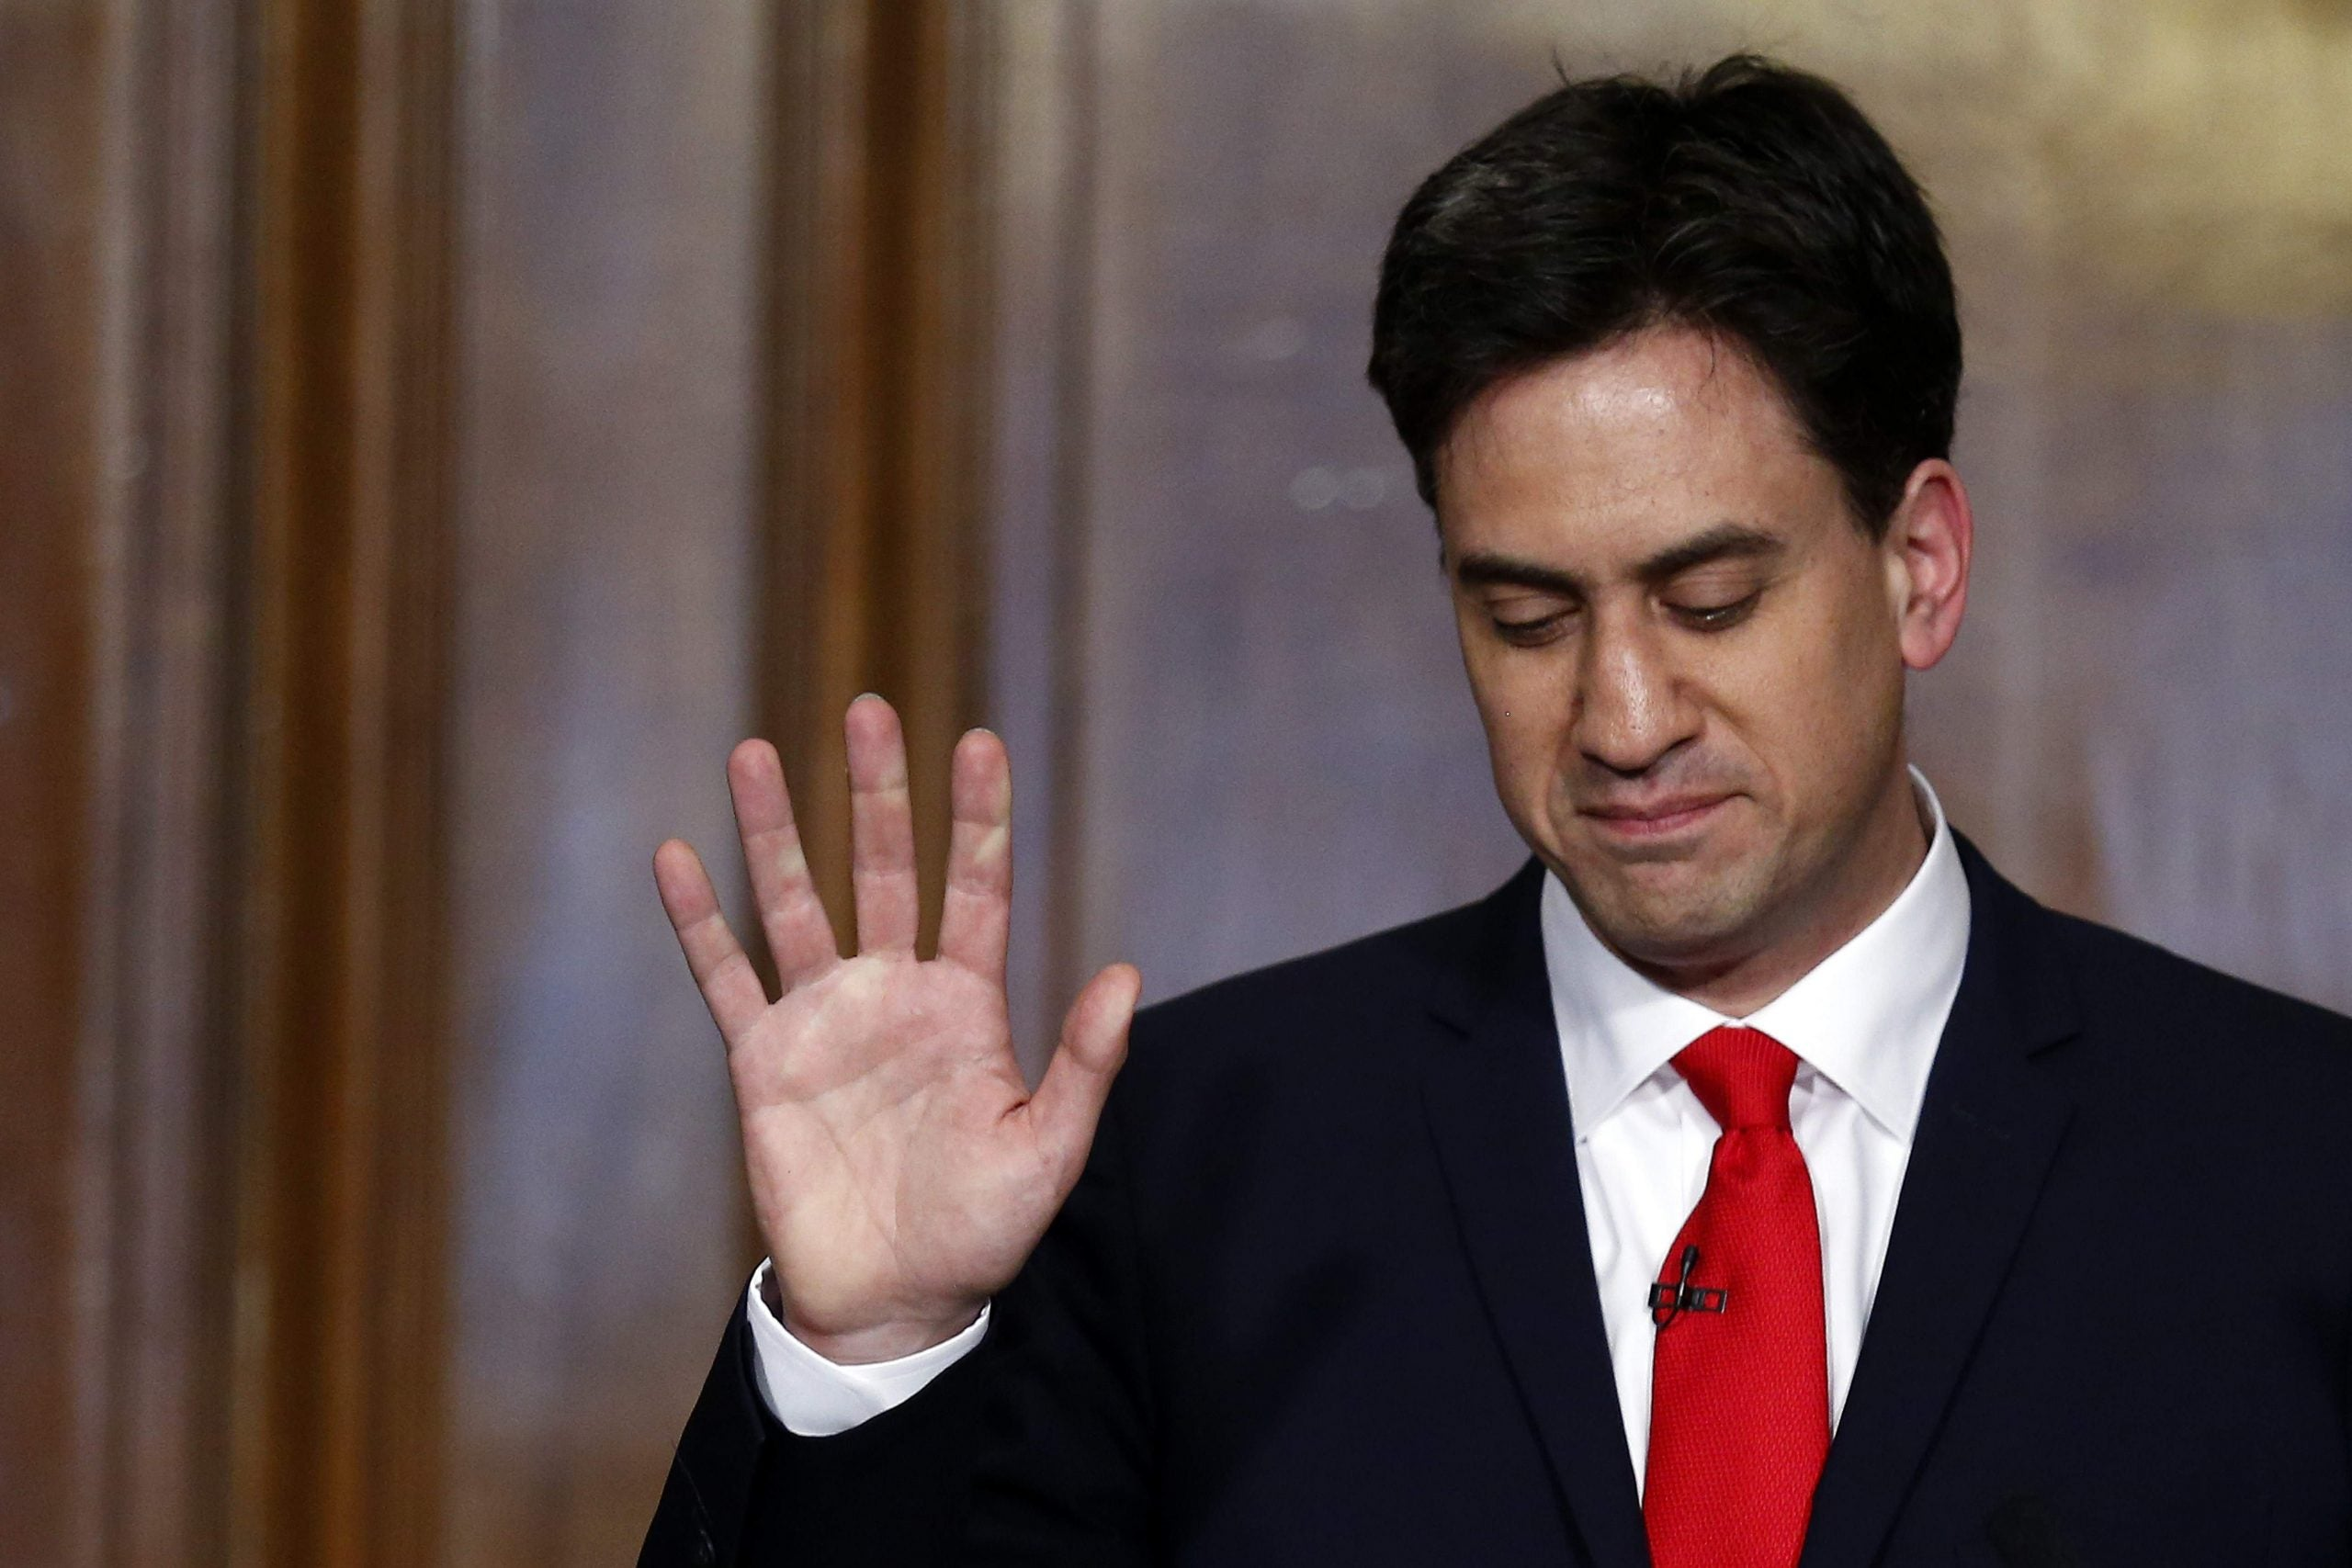 Labour's woes are far deeper than its leader